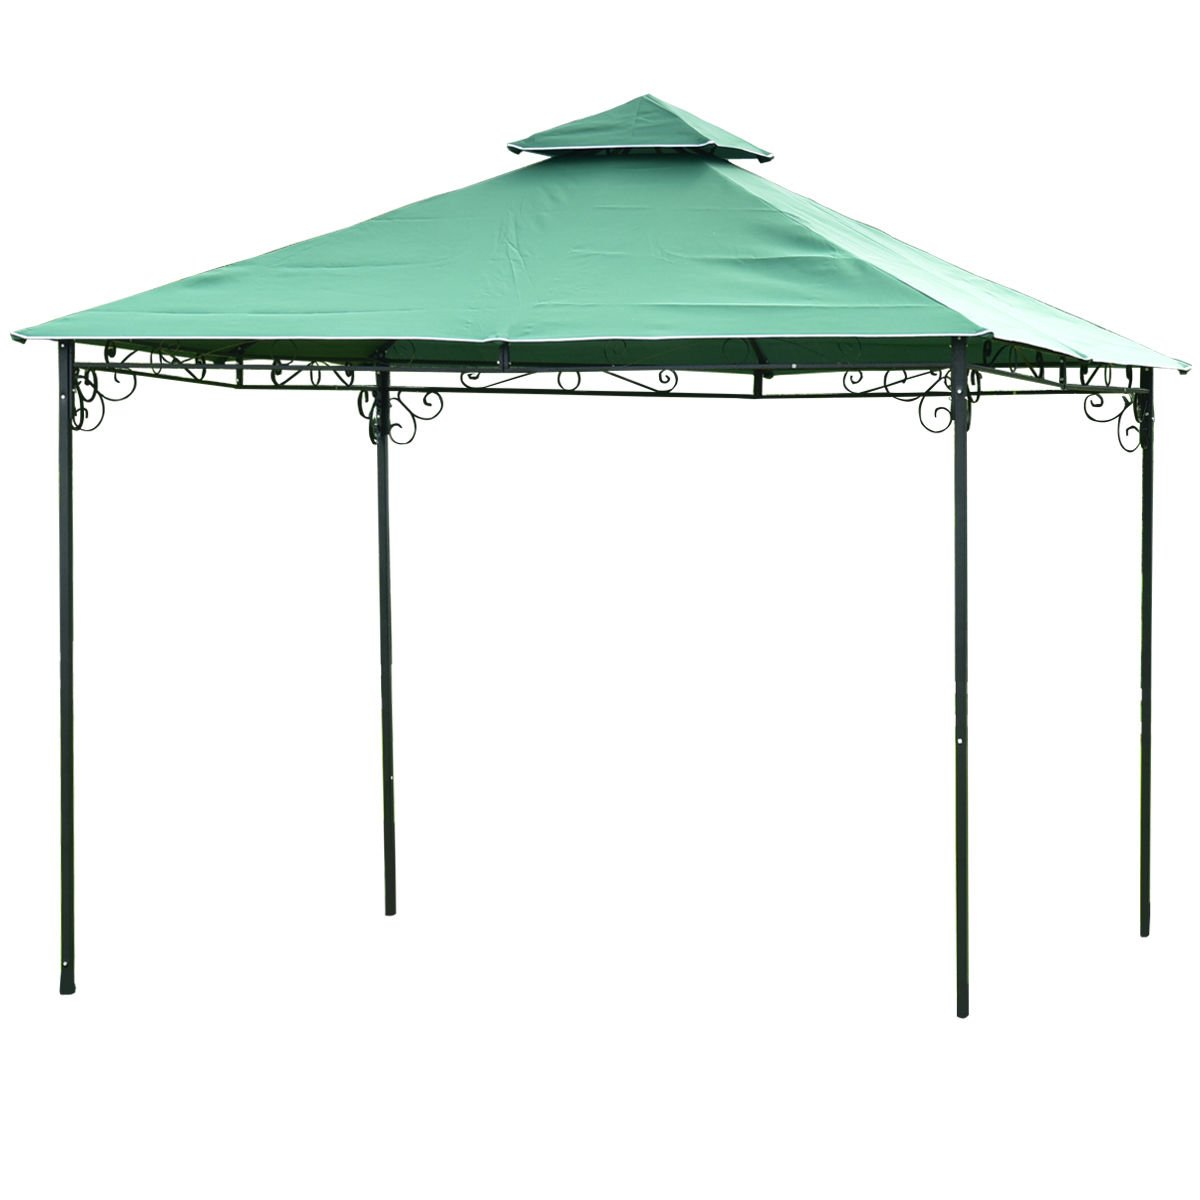 TANGKULA 2 Tier 10'x10' Gazebo Tent Patio Outdoor Party Canopy Tent